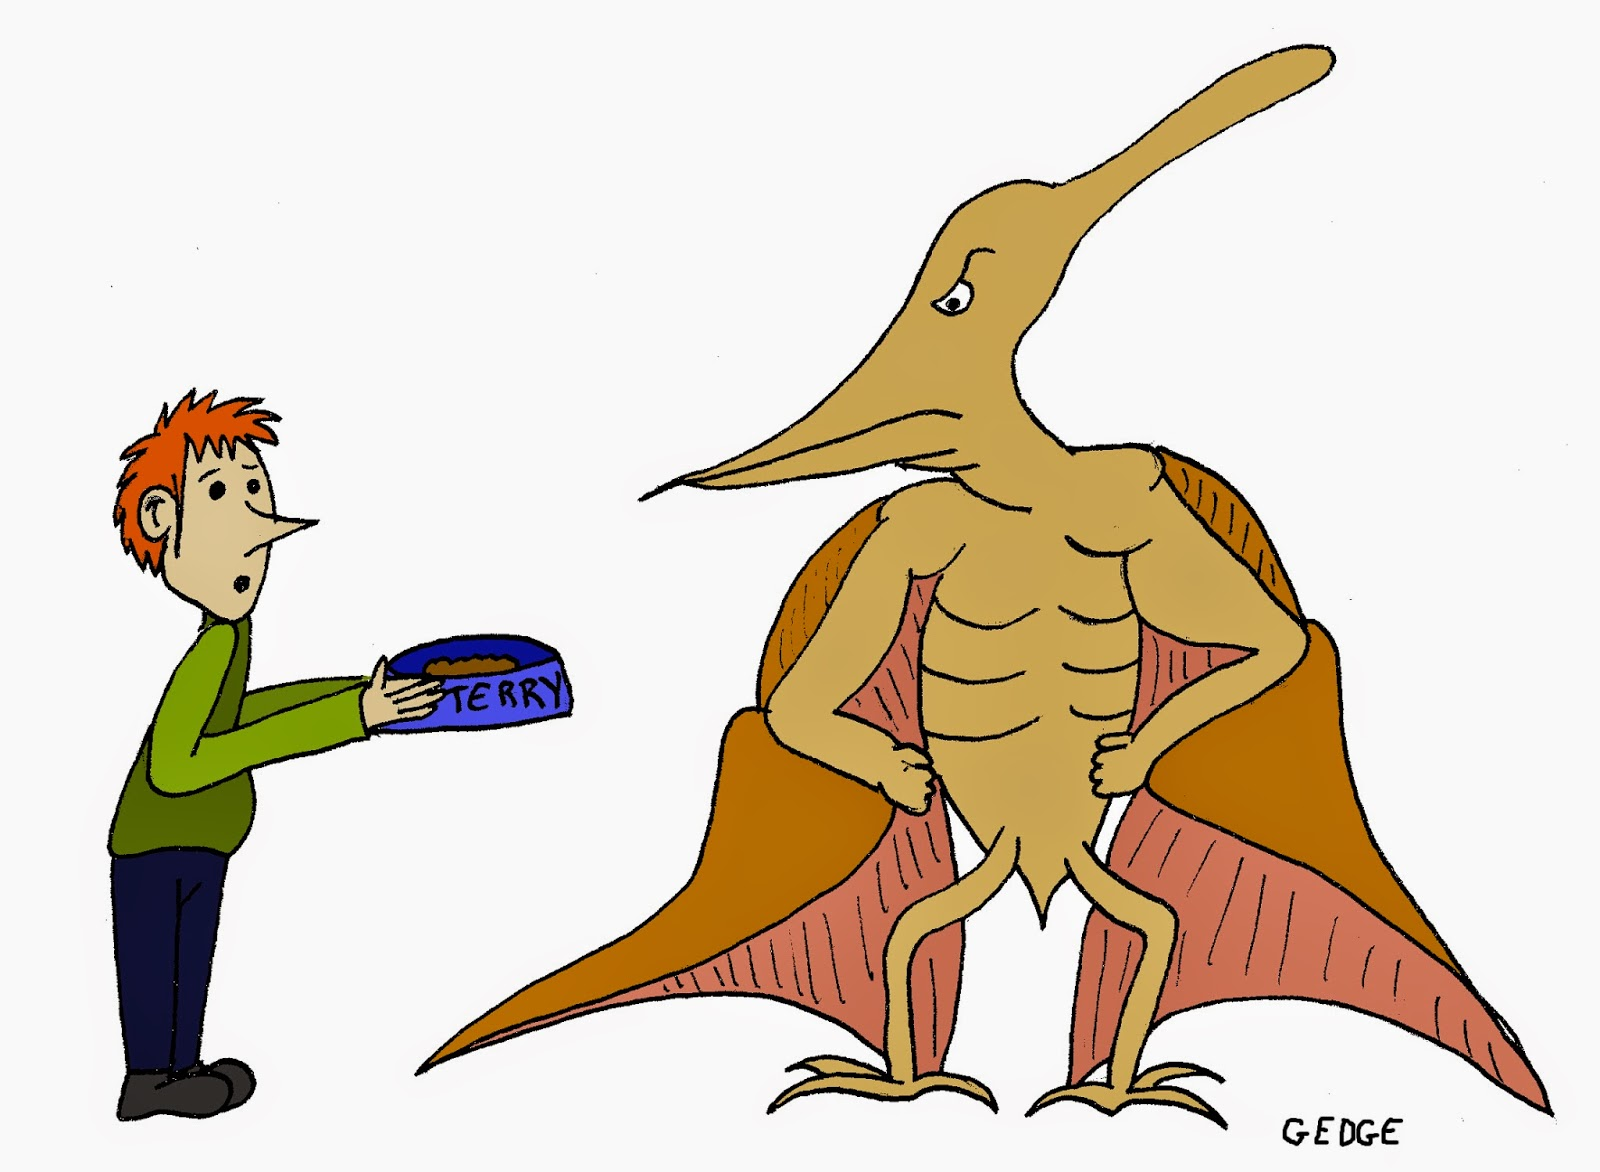 Man feeding pet food to an angry pterodactyl